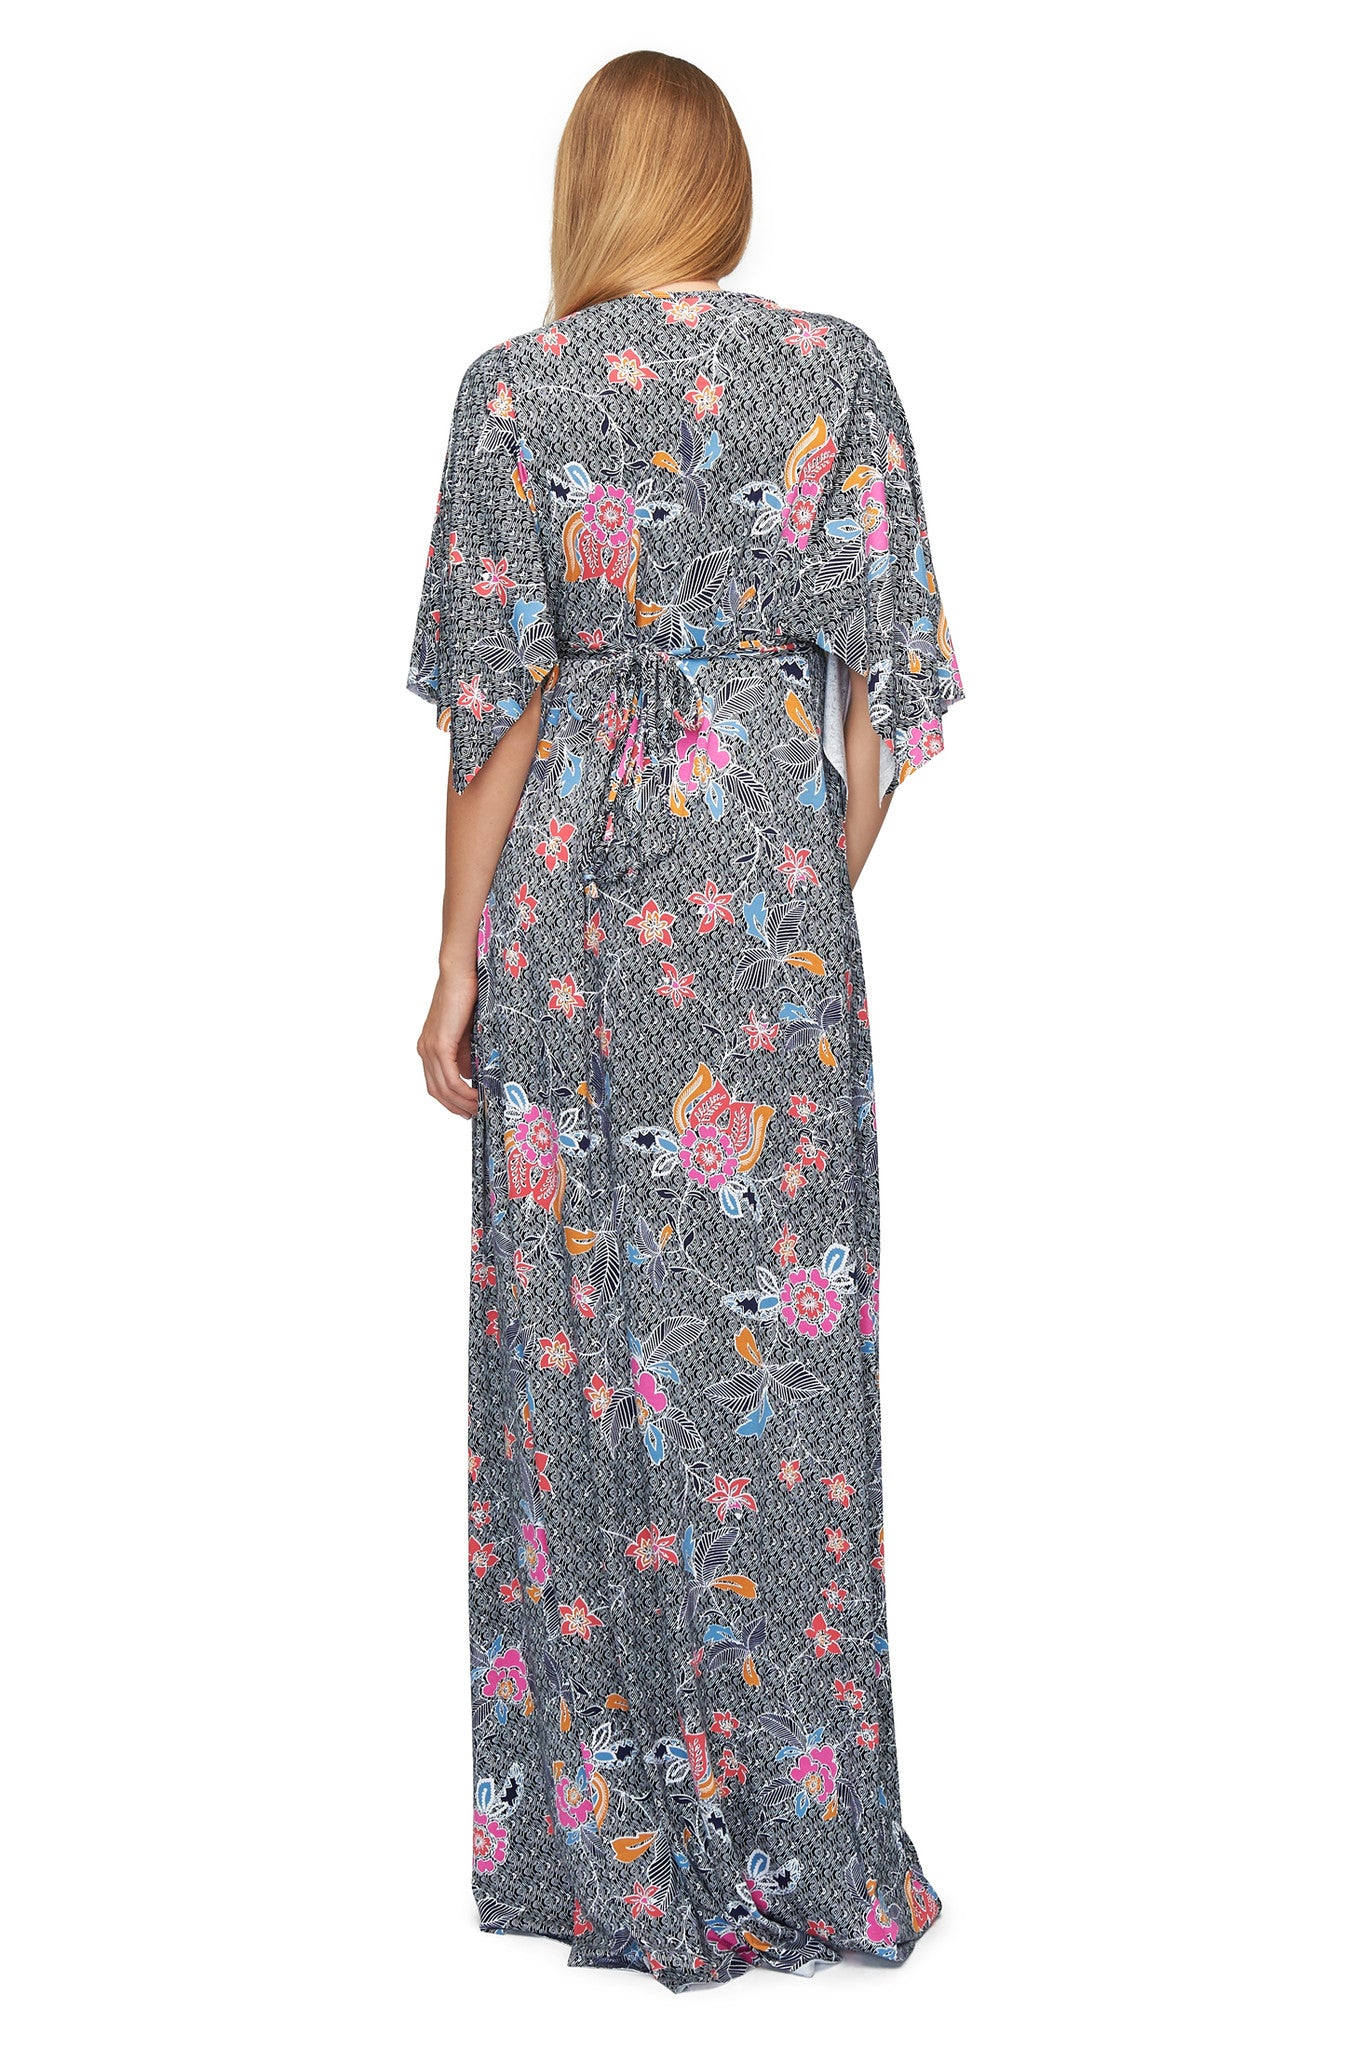 LONG CAFTAN DRESS PRINT - ISLAND FLOWER